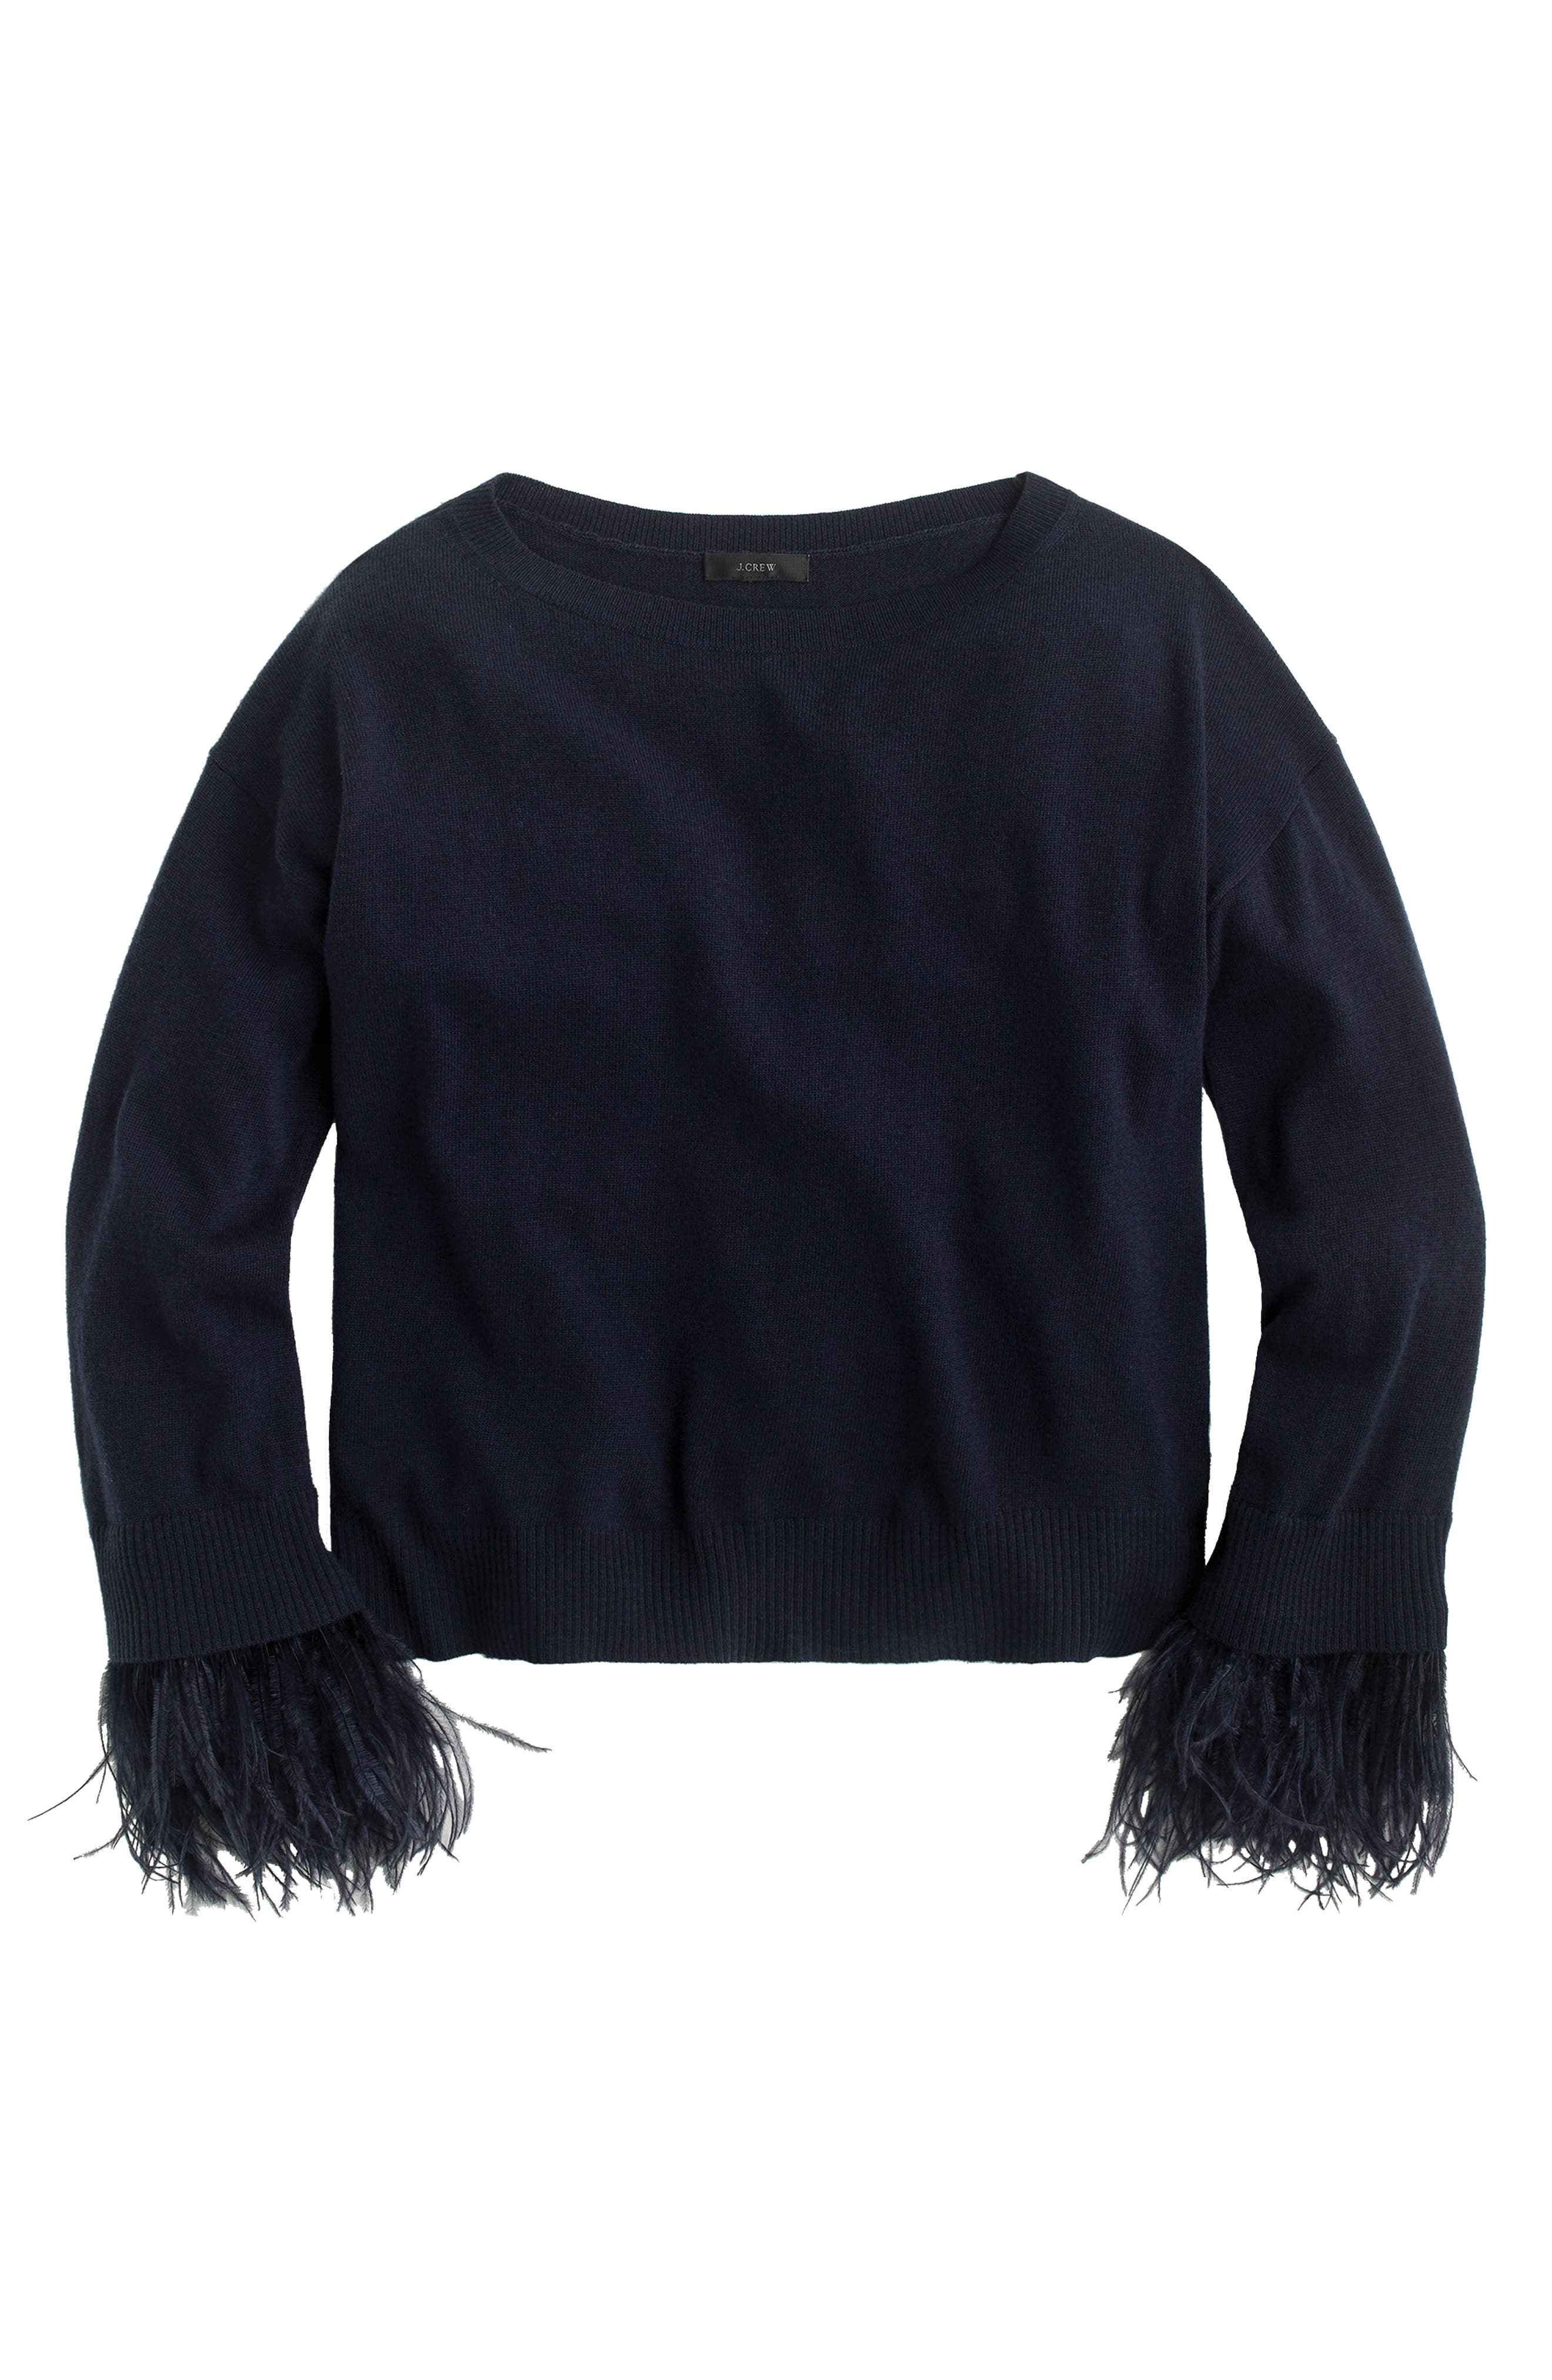 Alternate Image 1 Selected - J.Crew Feather Sleeve Crewneck Sweater